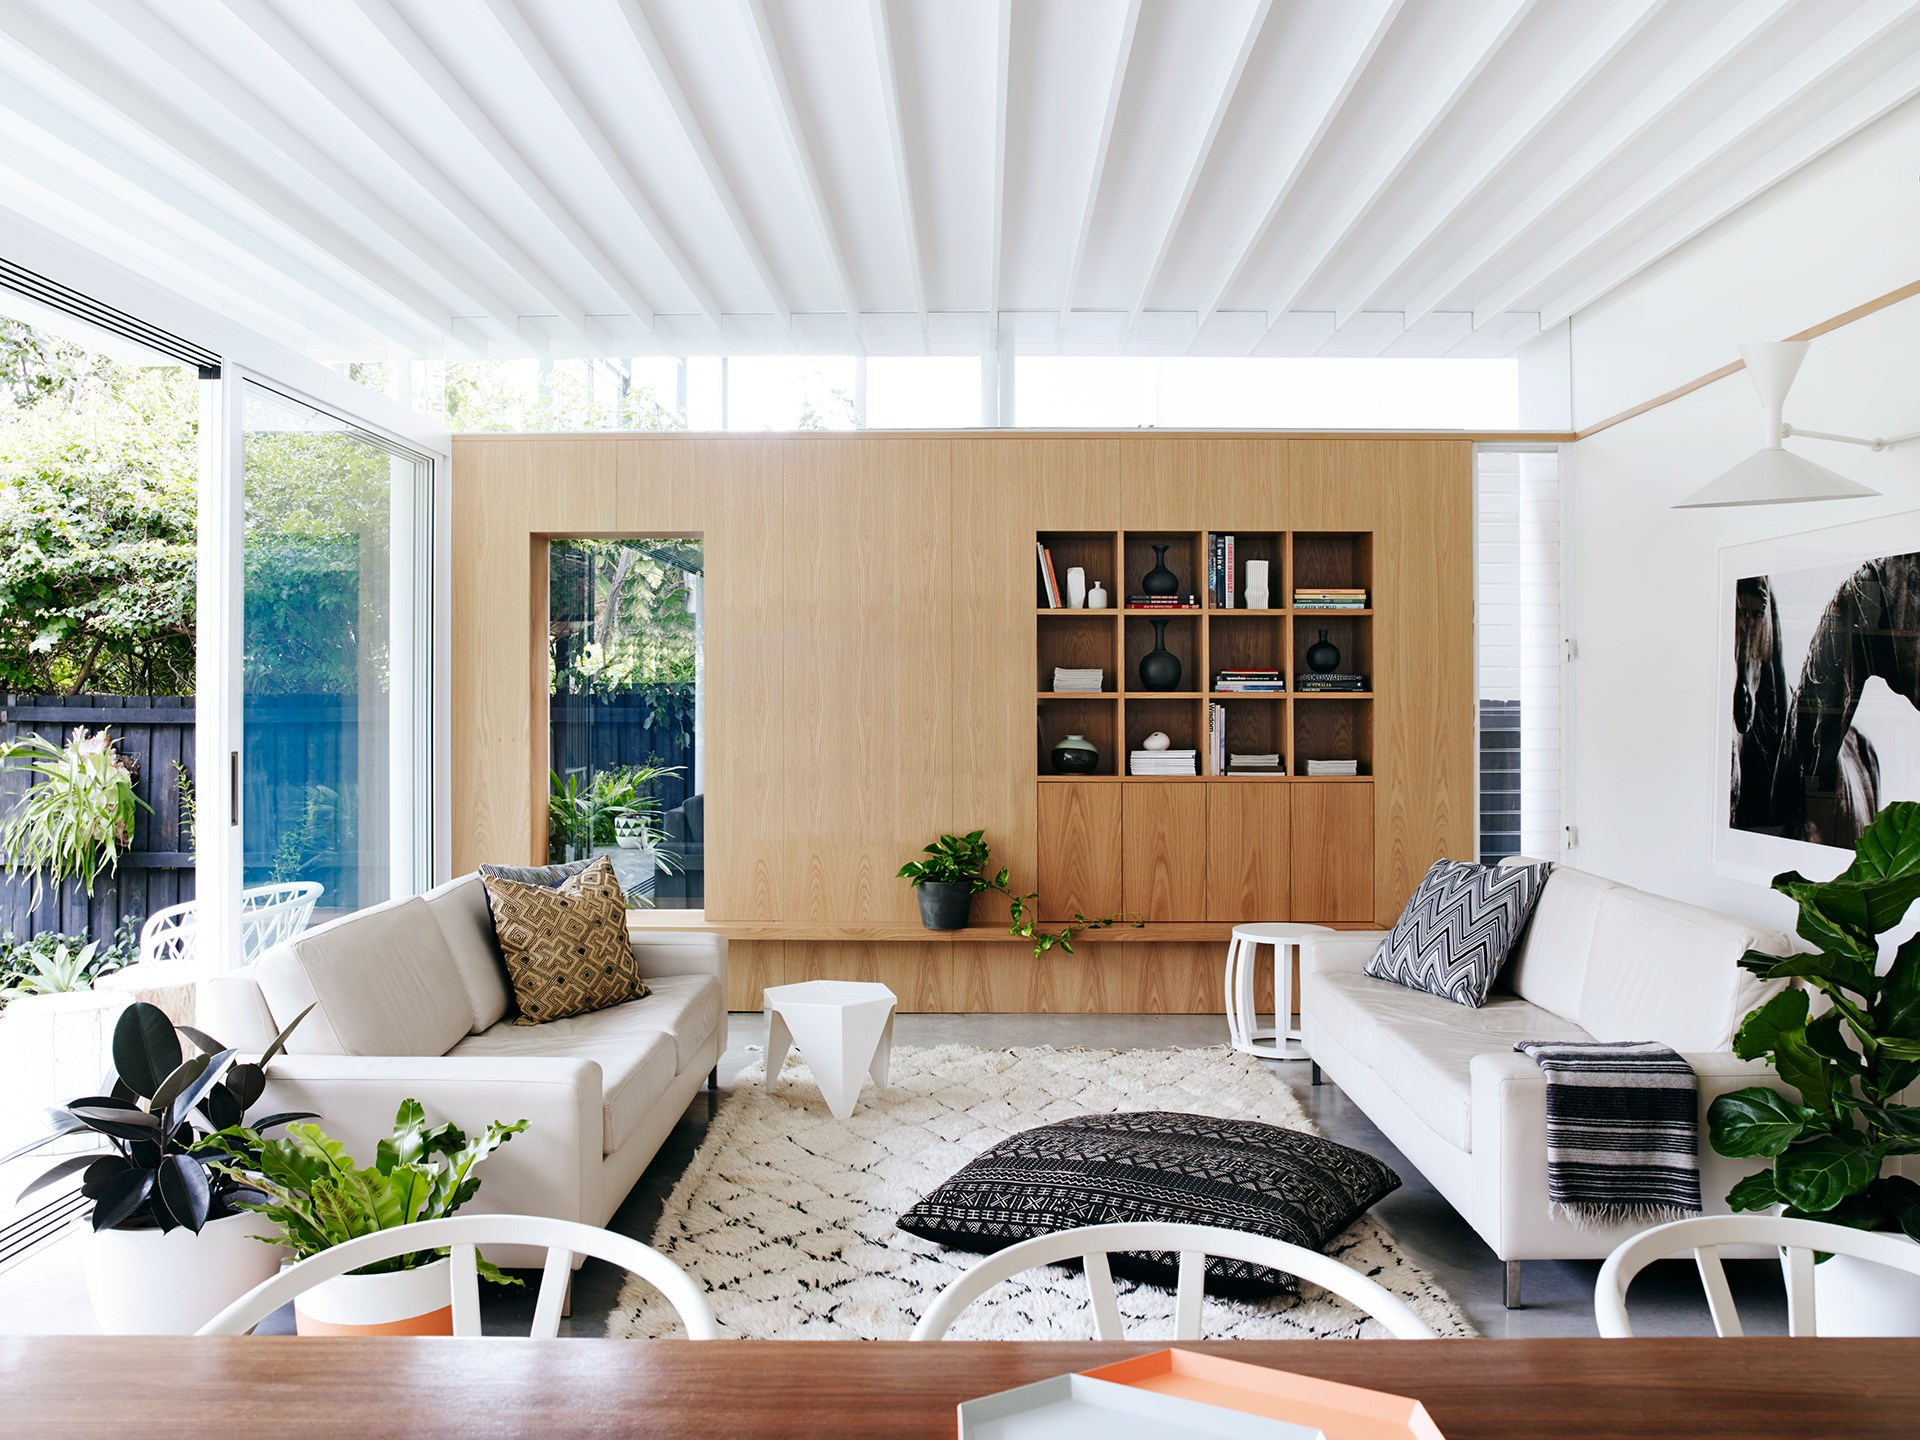 """See more of this [dazzling duplex overhaul](http://www.homestolove.com.au/modernism-inspires-laid-back-family-home-2762